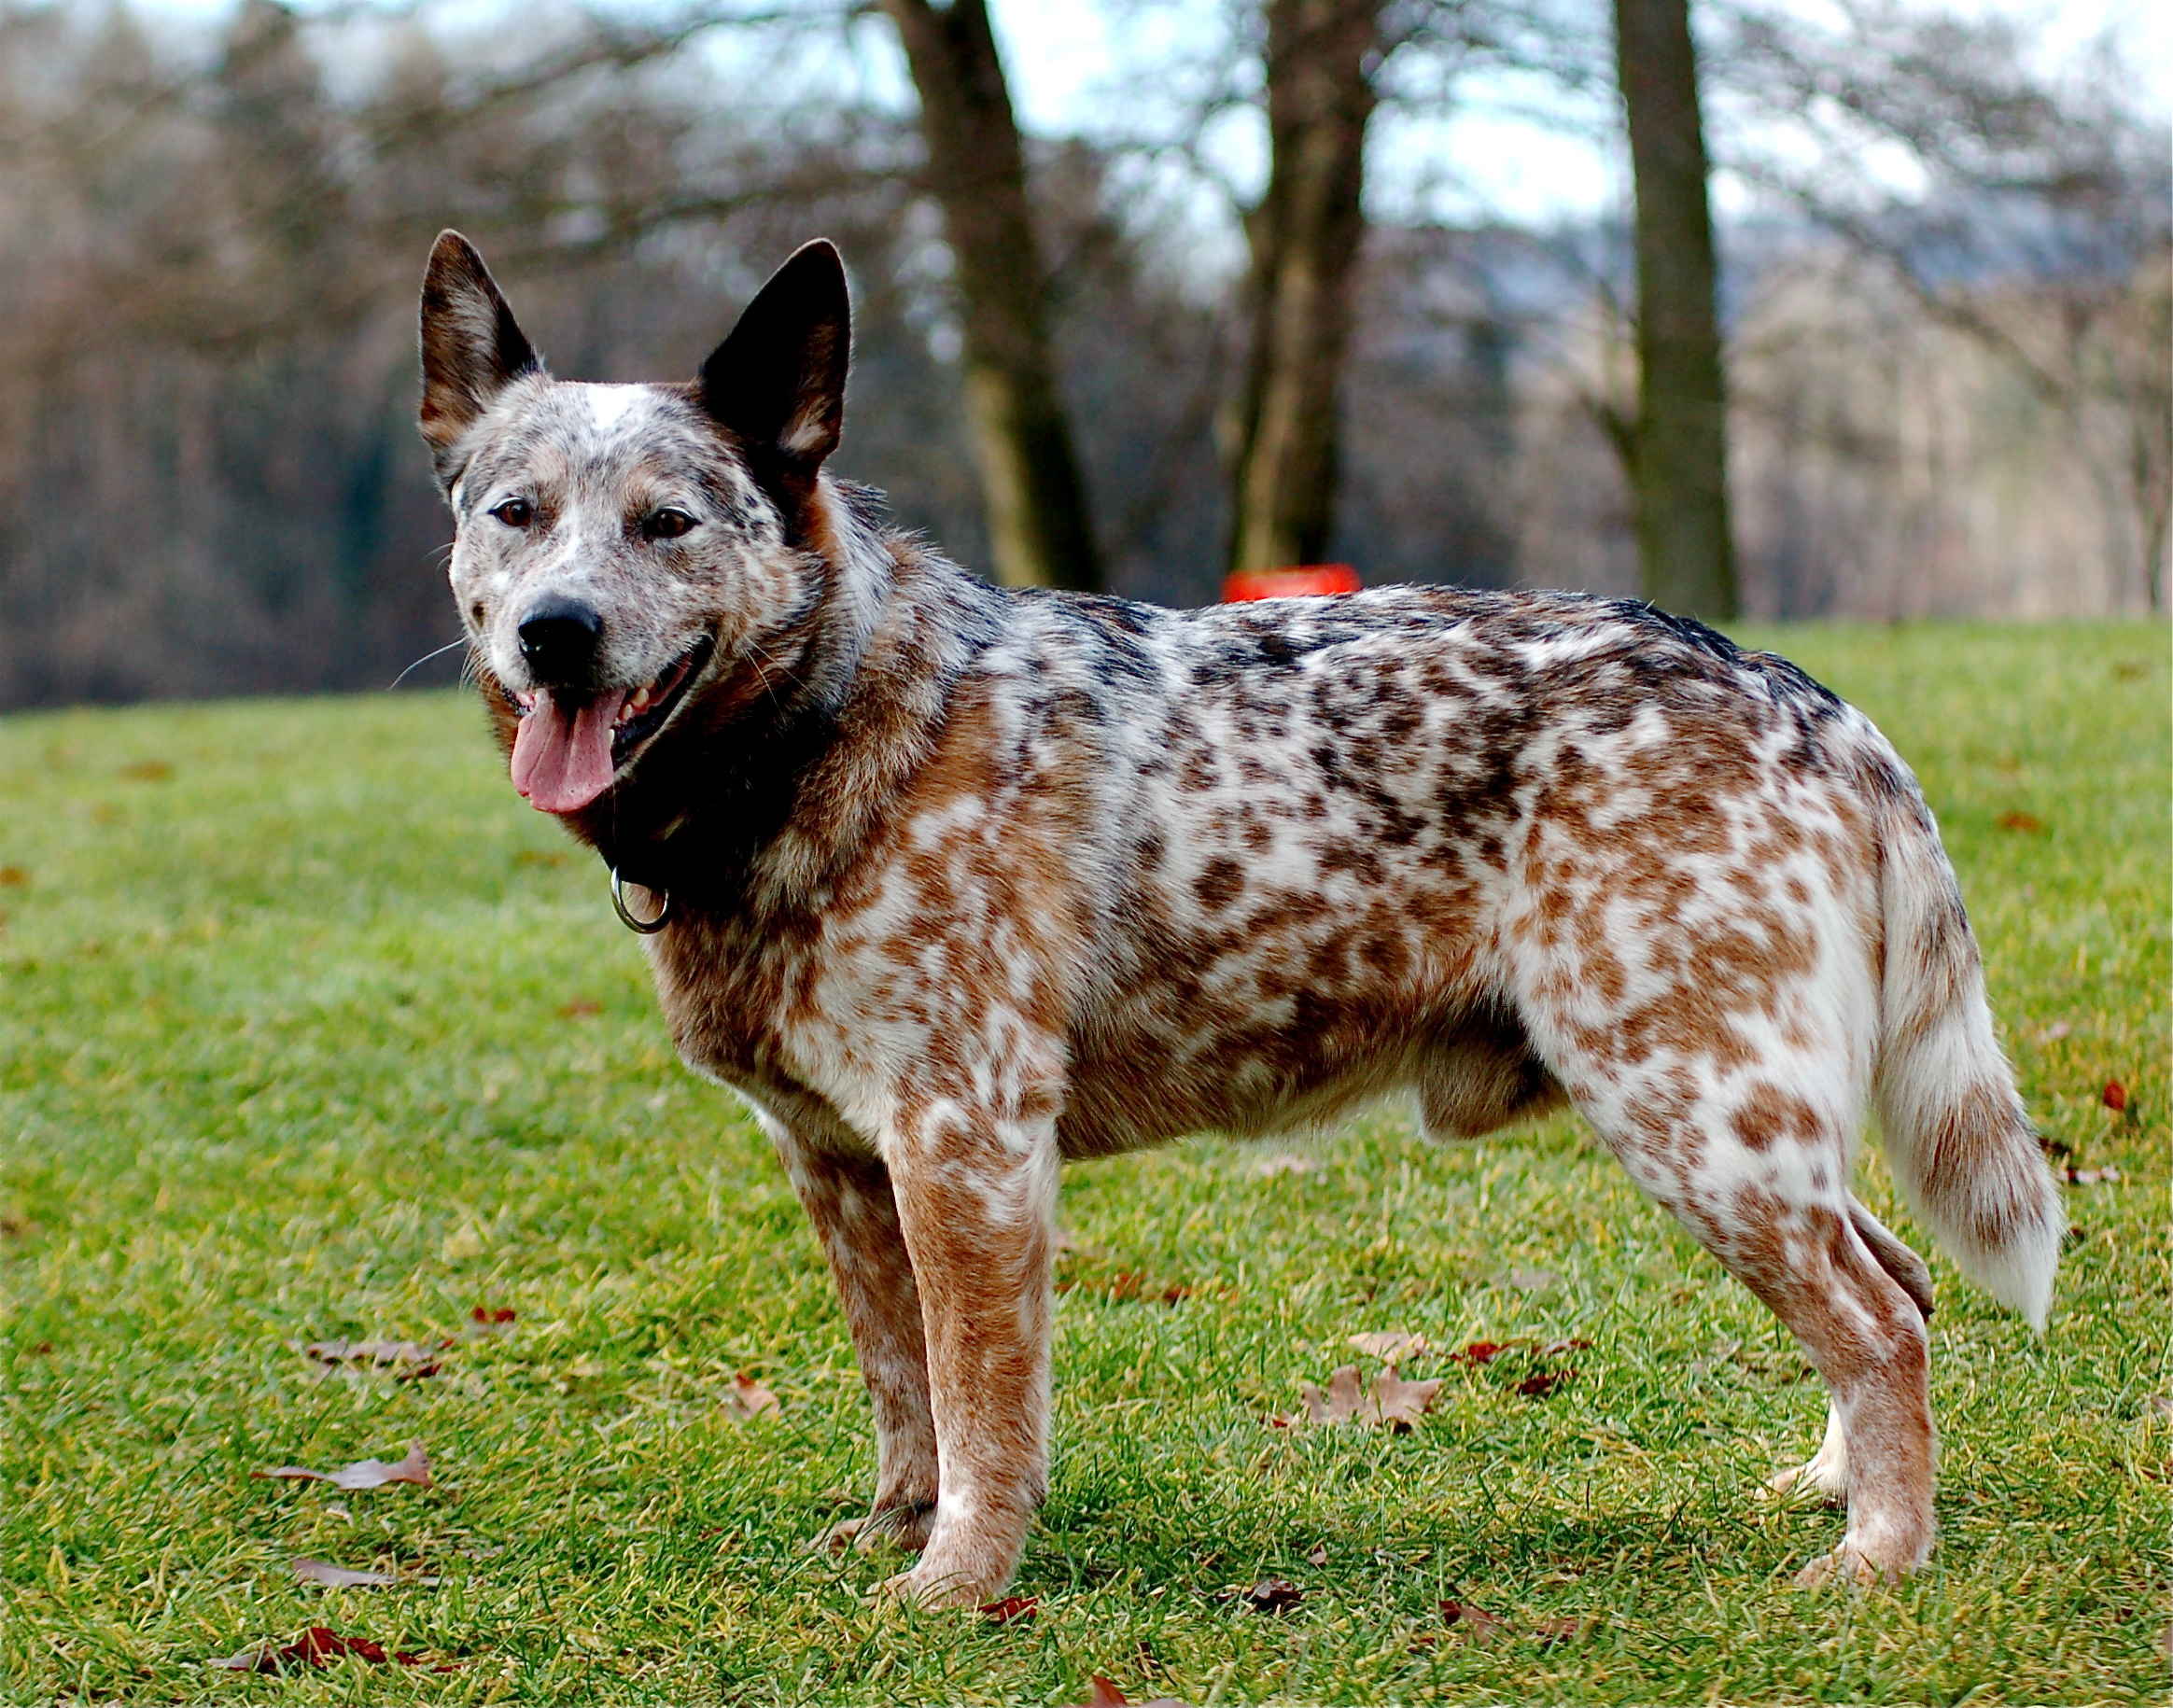 have never seen an Australian cattle dog that had a near perfect